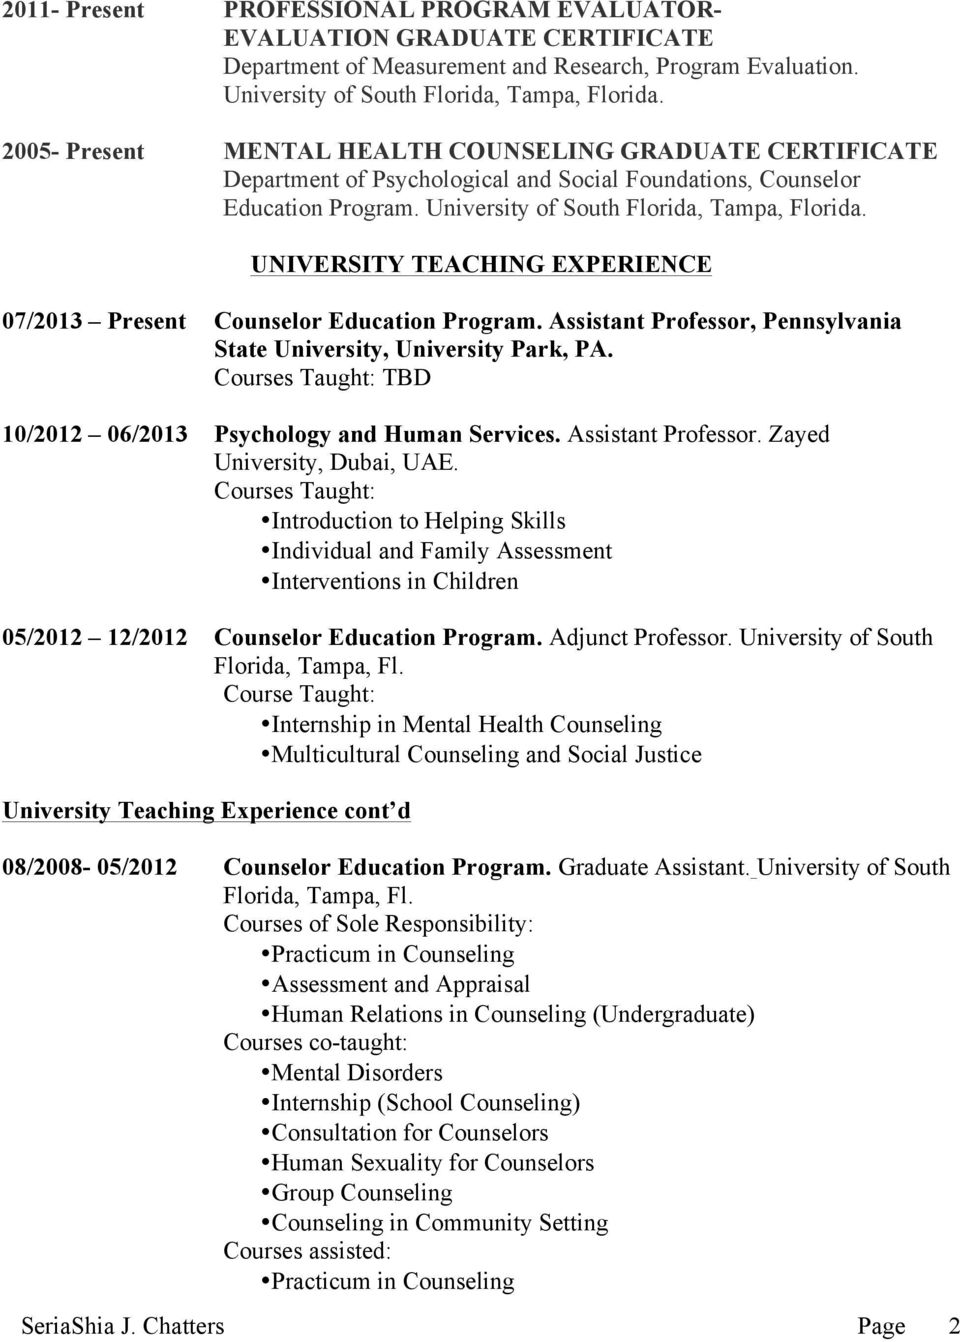 UNIVERSITY TEACHING EXPERIENCE 07/2013 Present Counselor Education Program. Assistant Professor, Pennsylvania State University, University Park, PA.